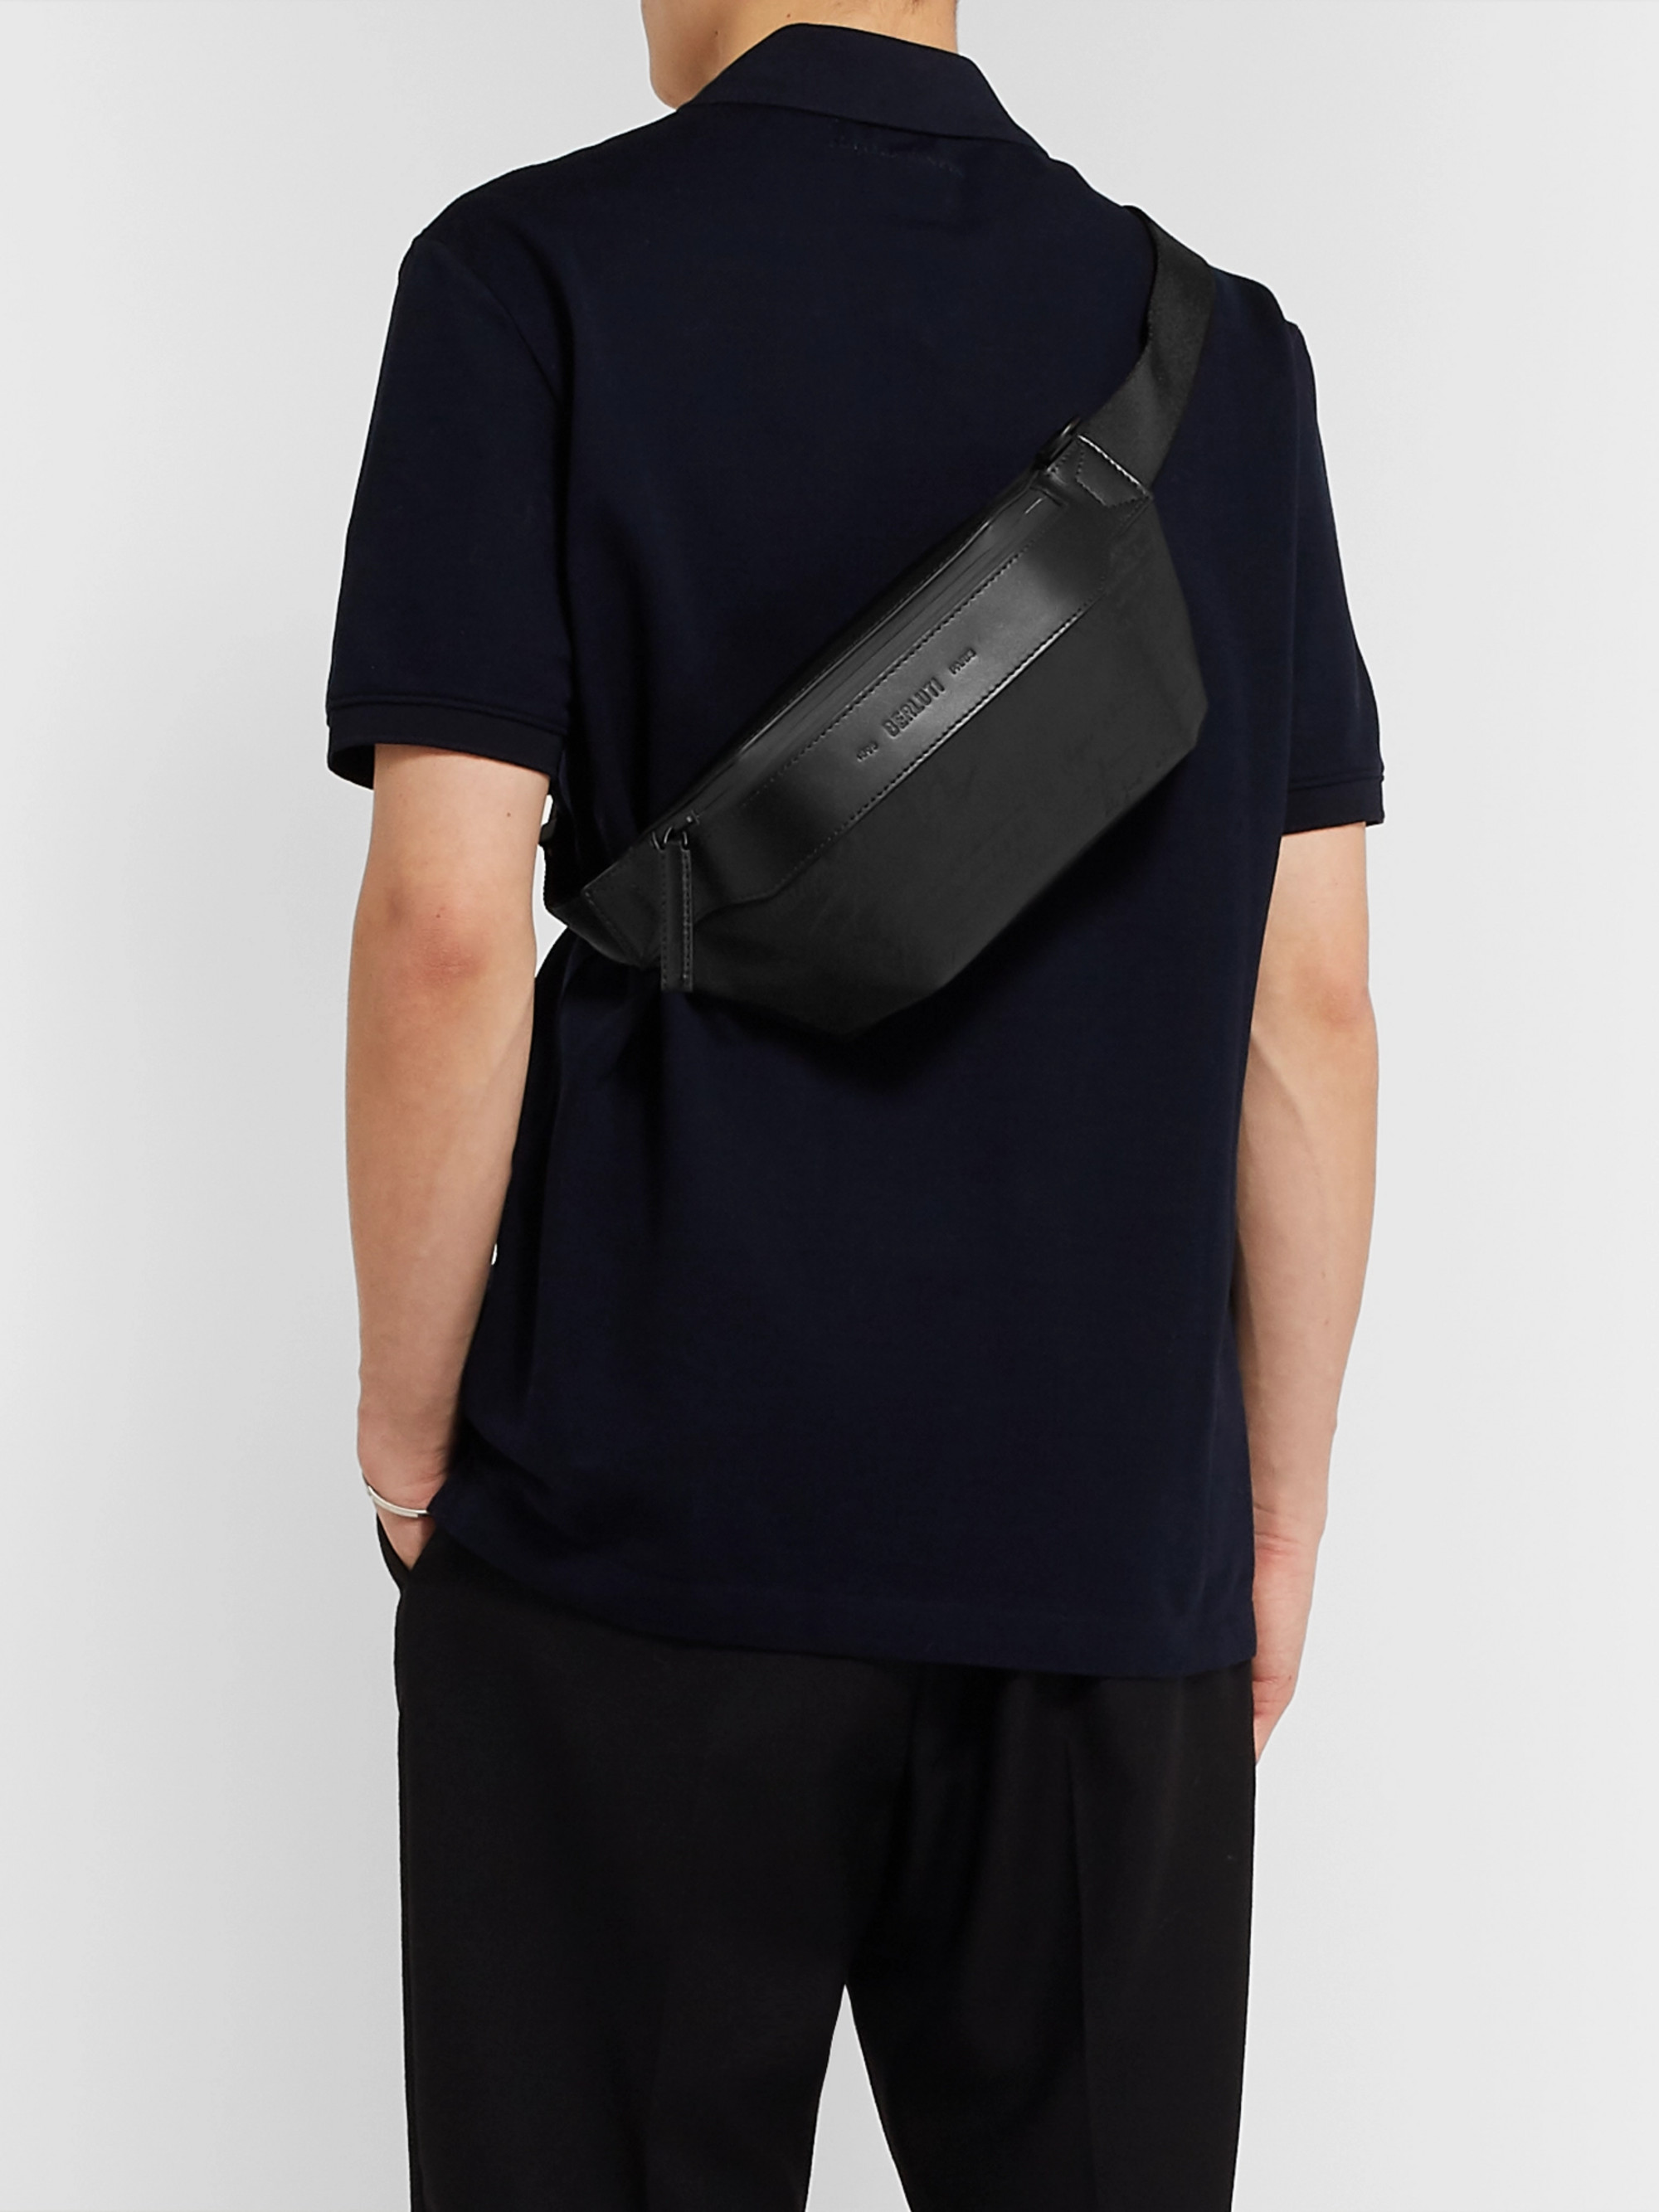 Berluti Scritto Leather-Trimmed Nylon Belt Bag